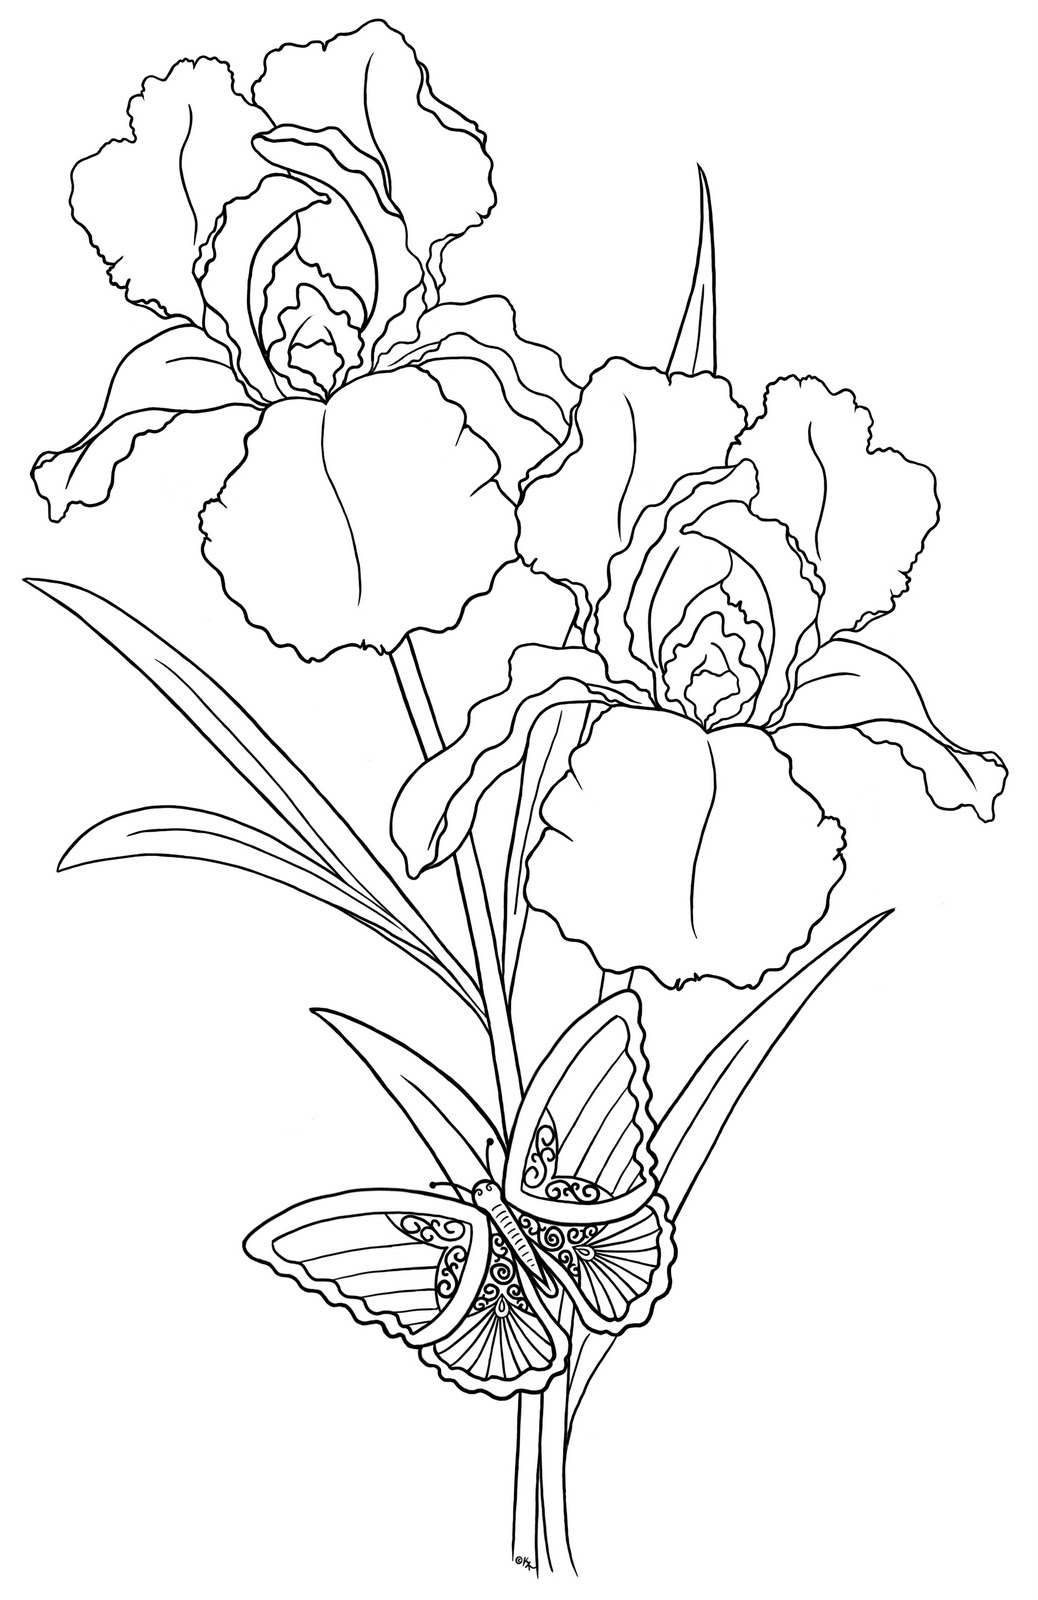 iris coloring pages - photo#19